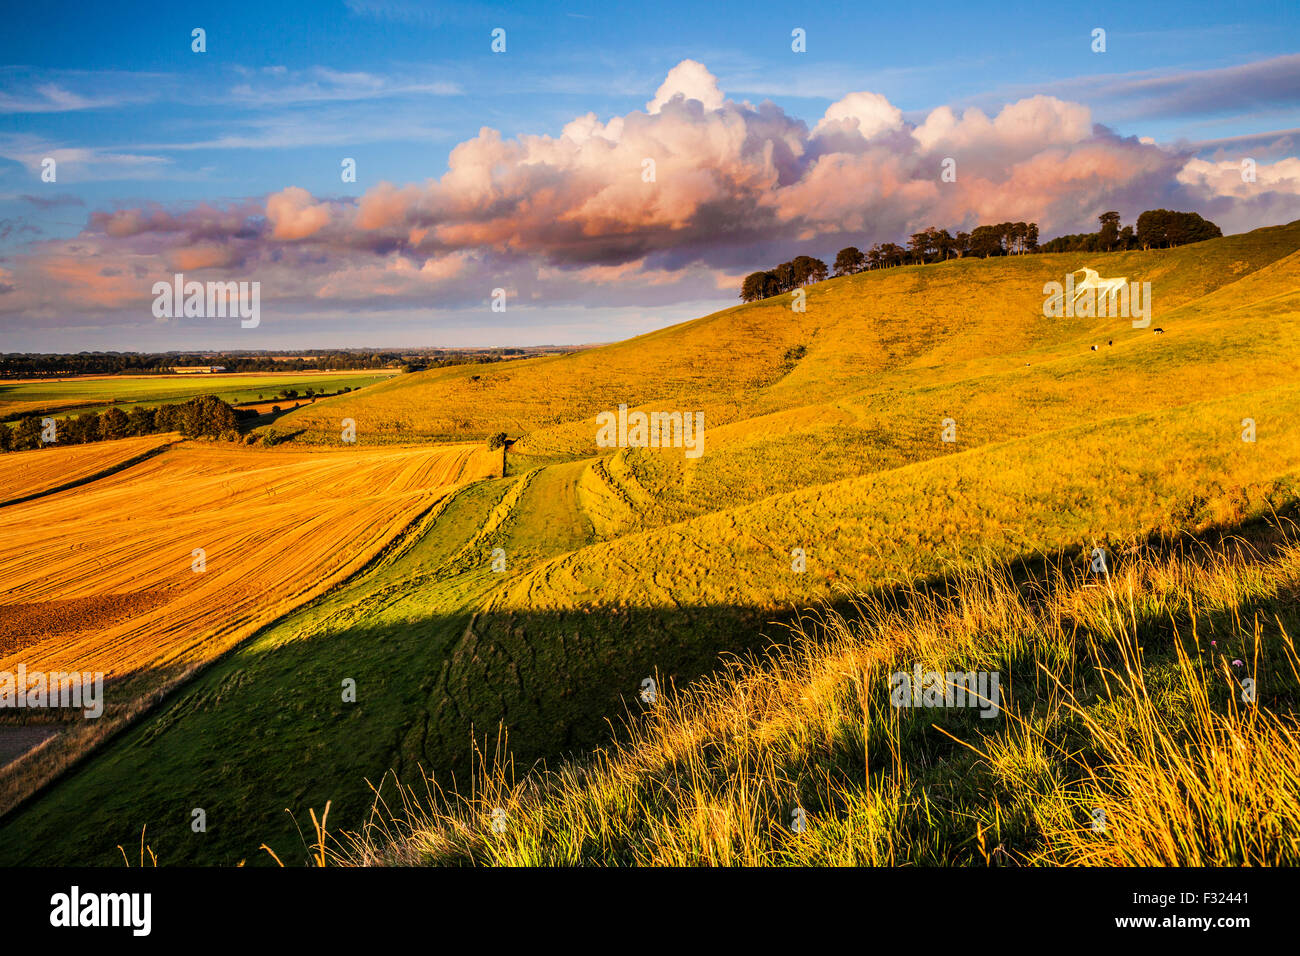 The White Horse at Cherhill in Wiltshire. Stock Photo